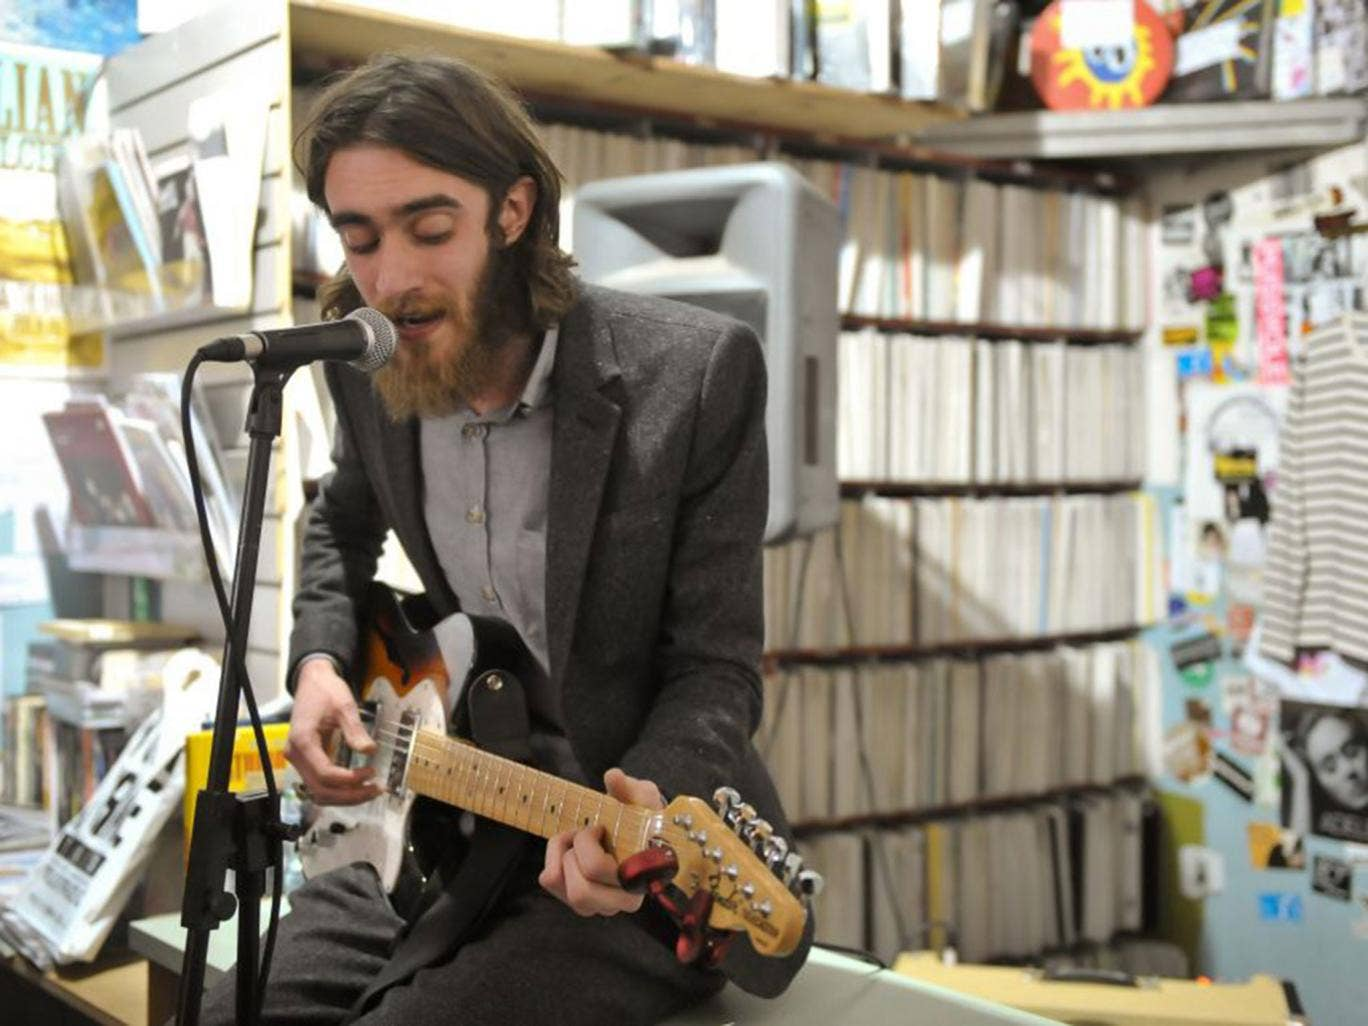 Keaton Henson has struggled to cope with crippling stage fright